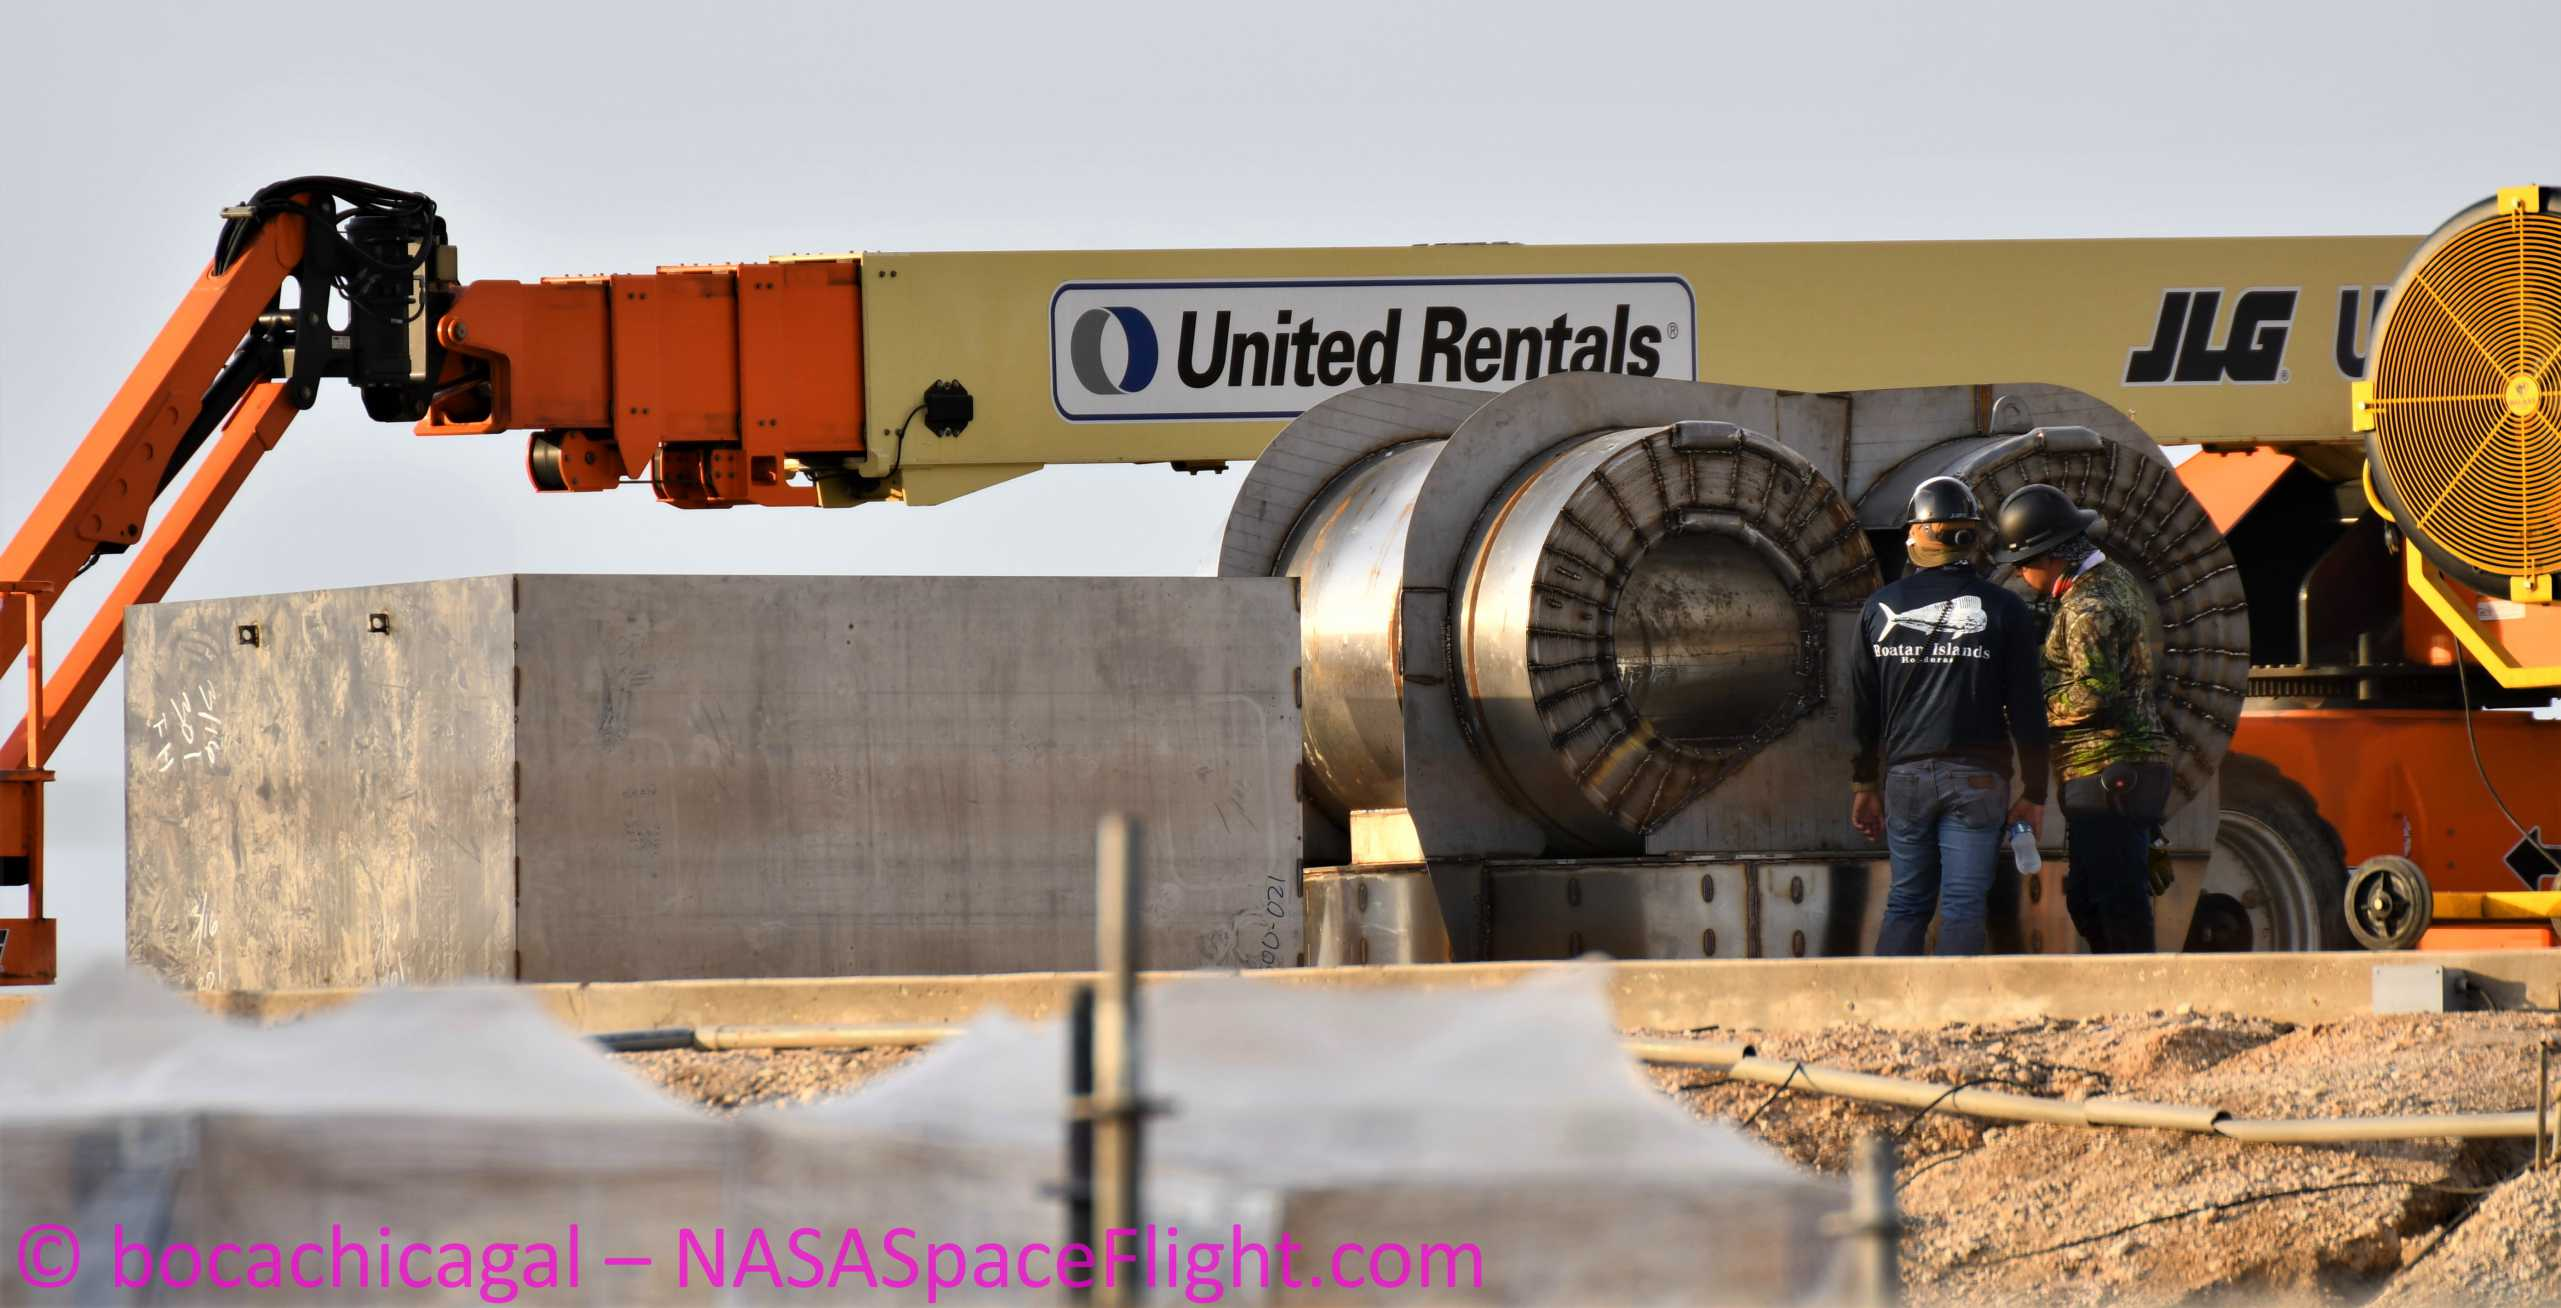 Starship Boca Chica 052420 (NASASpaceflight – bocachicagal) mystery box 1 crop(c)